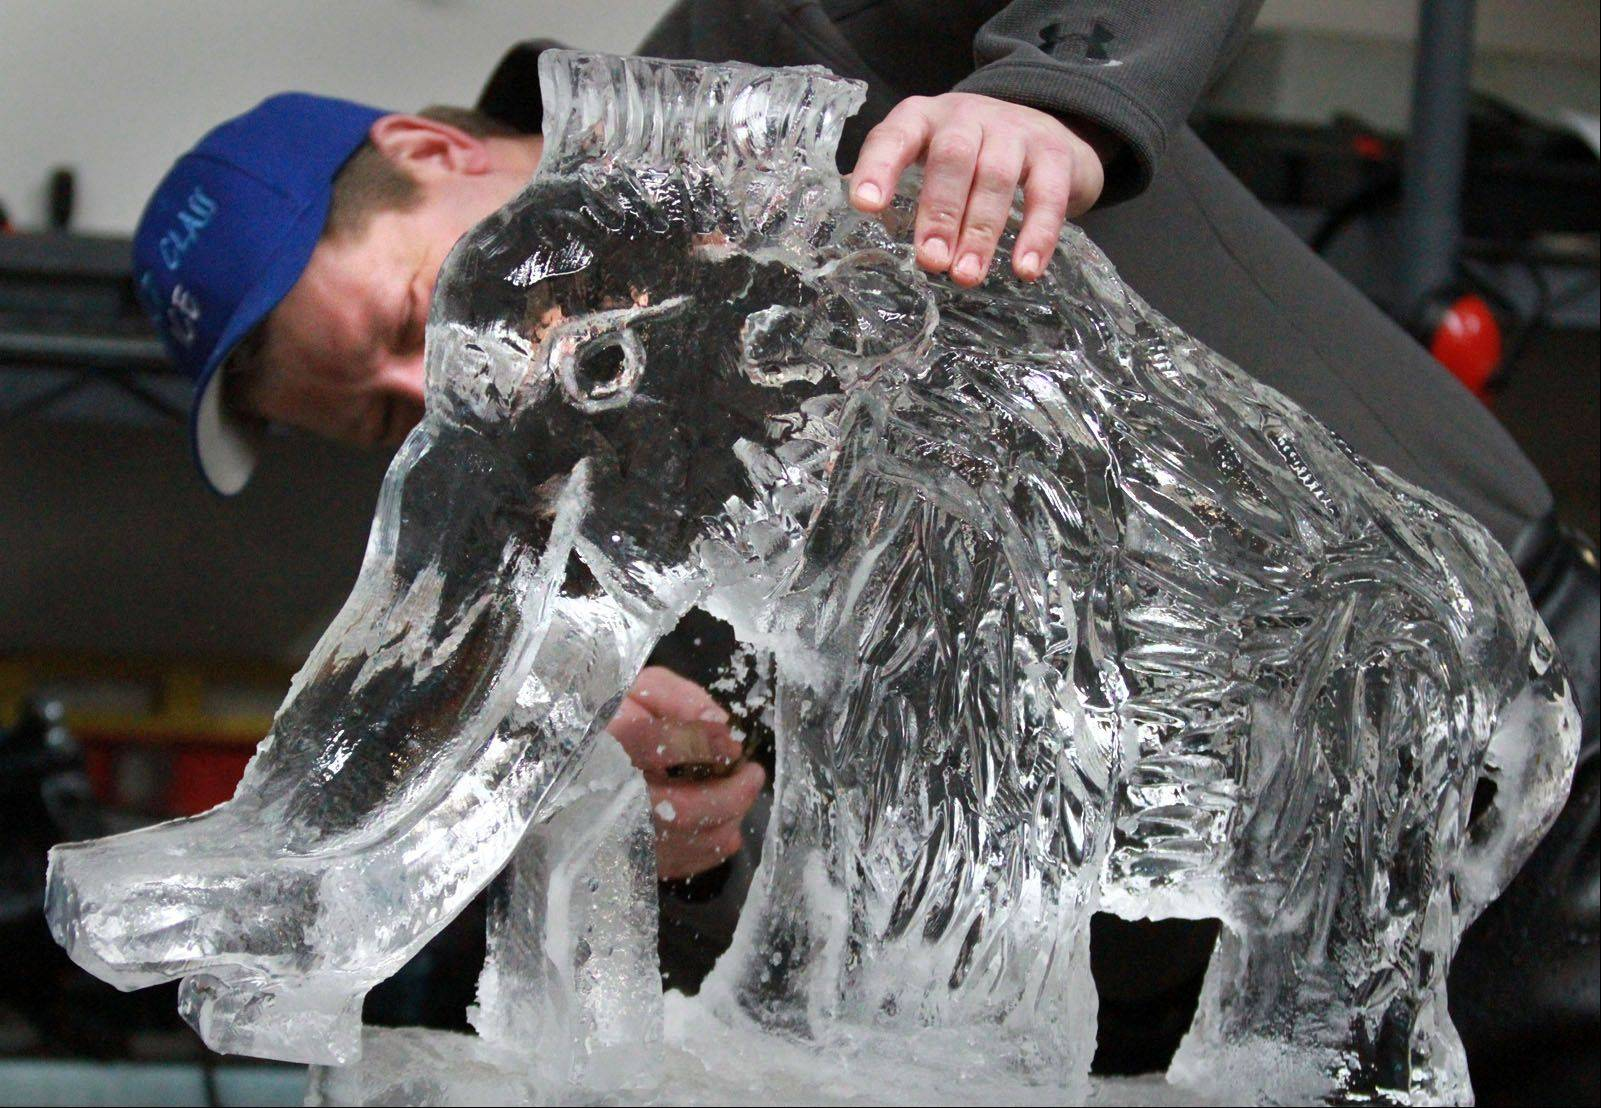 Dan Rebholz carves texture into an elephant sculpture at his World Class Ice Sculpture studio in Villa Park.